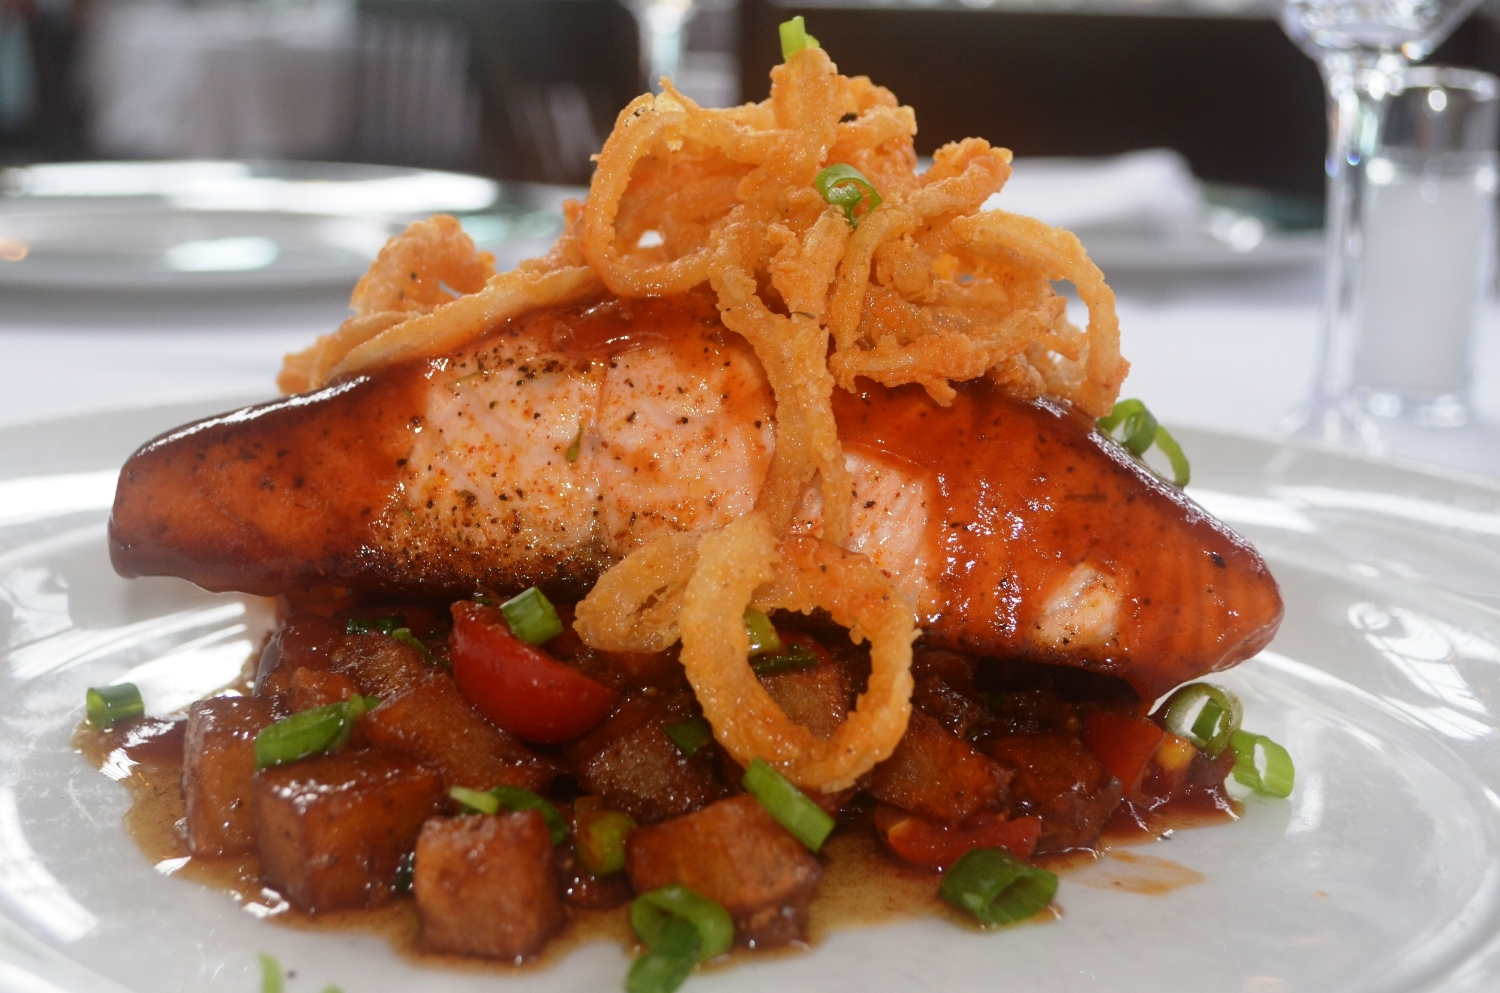 Sweet Barbecue Roasted Salmon from Emeril's Orlando. Image credit: Emeril's Orlando.